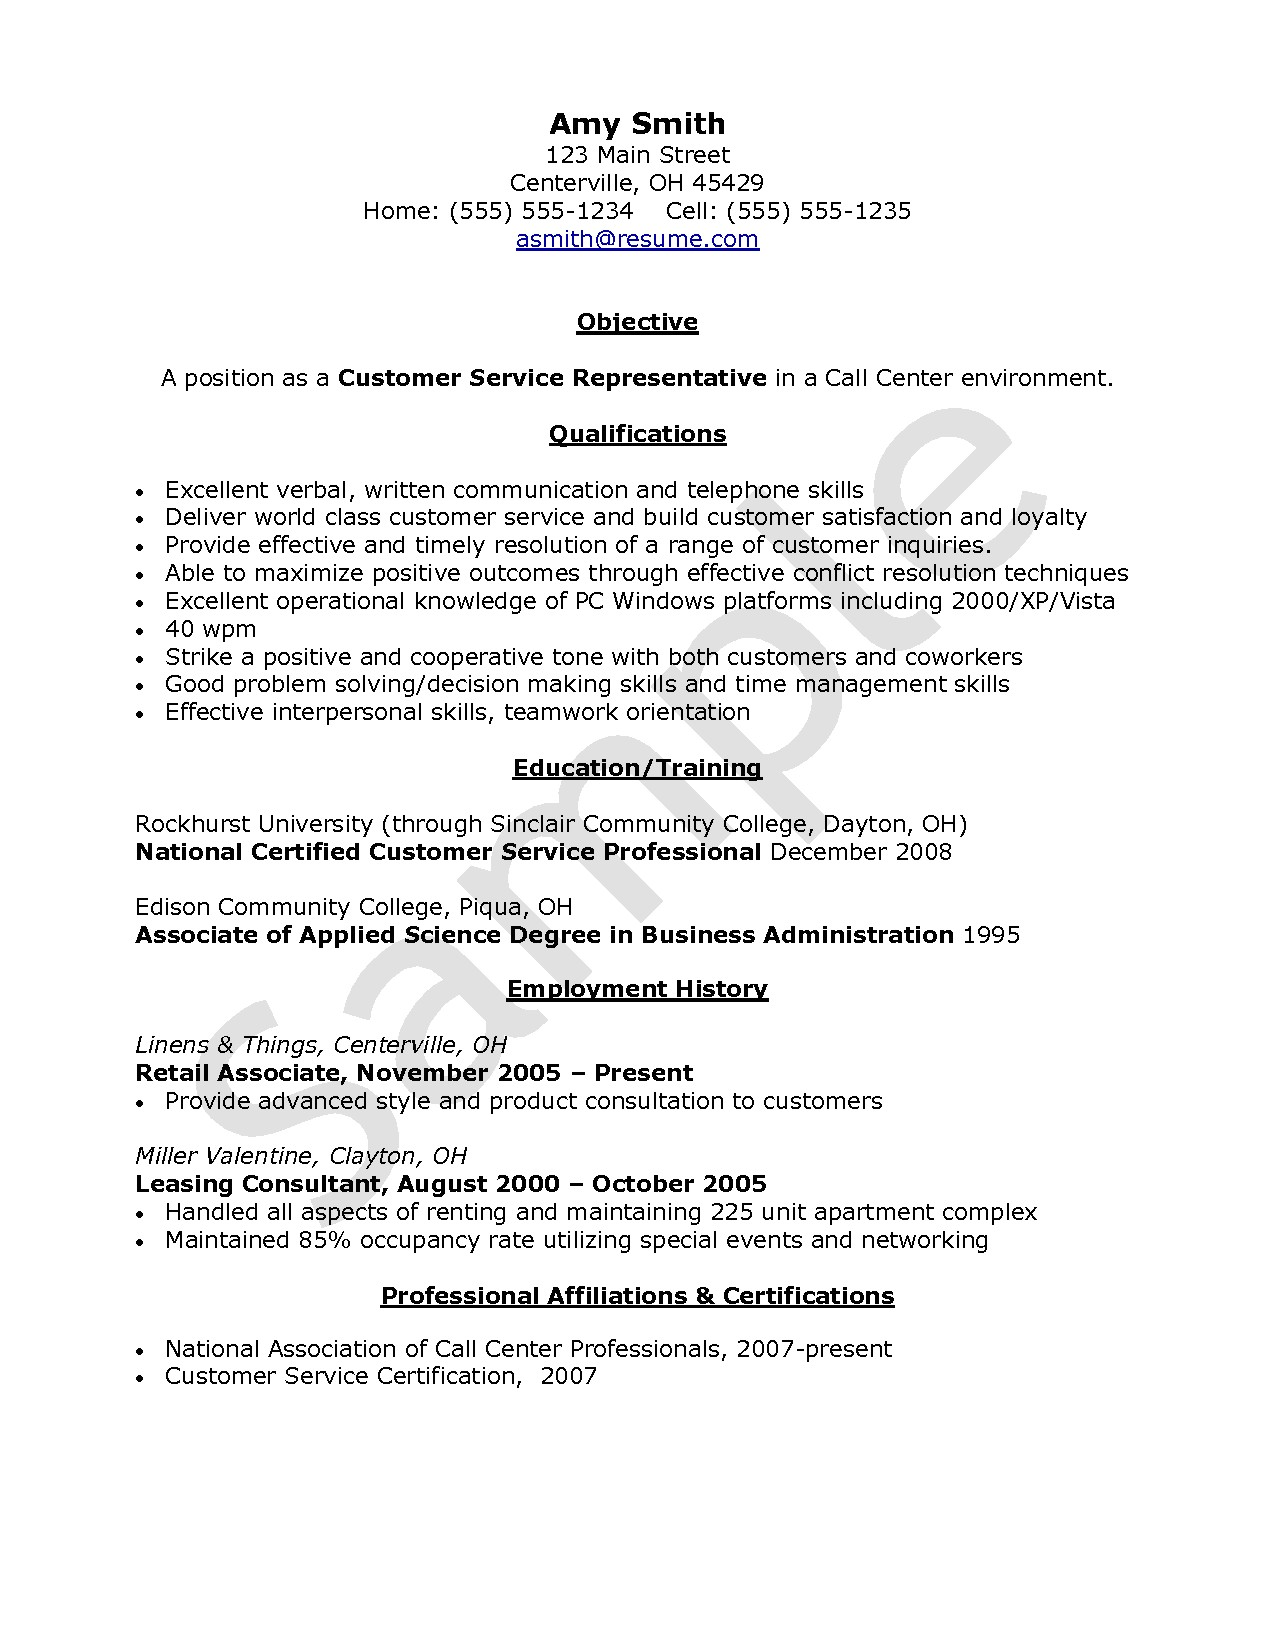 sample resume objective for call center agent